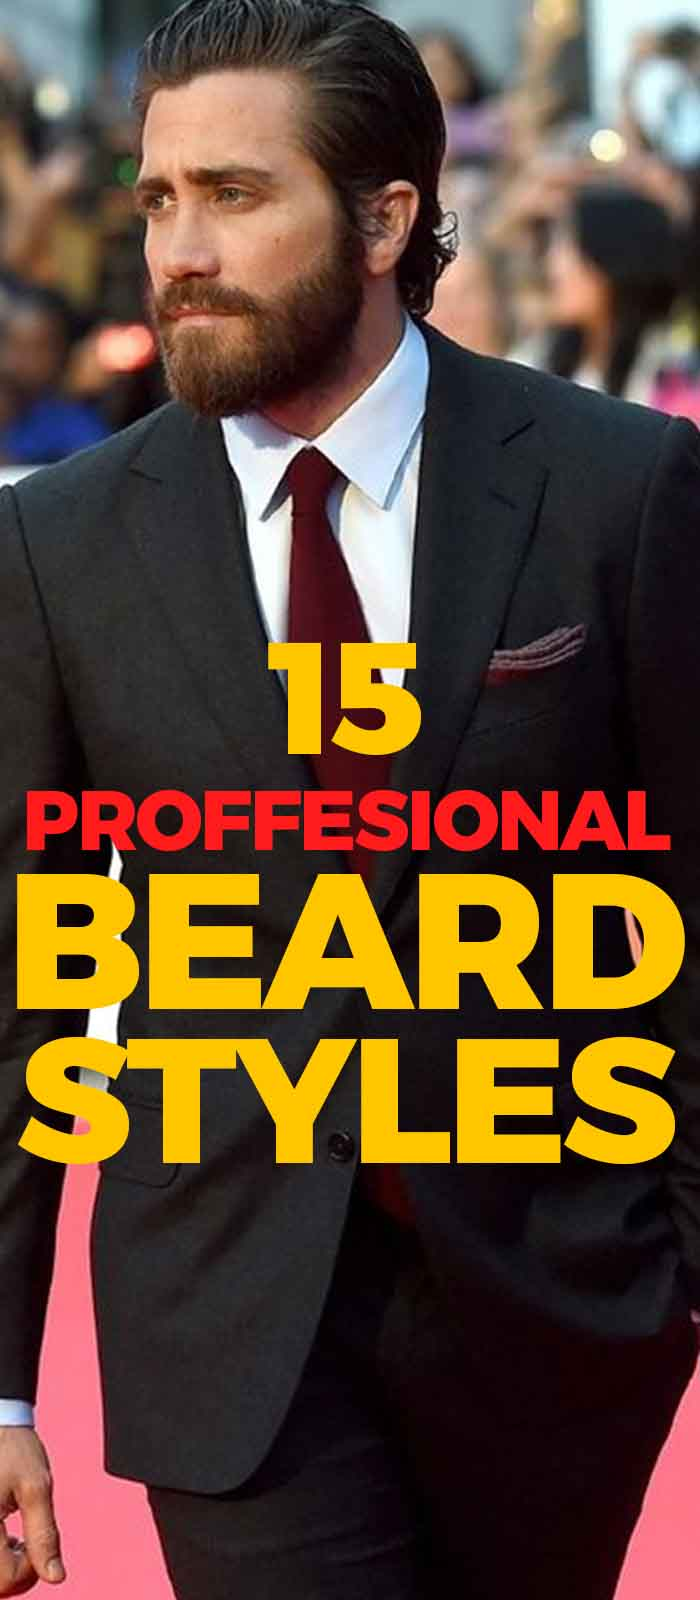 Black Suit Professional Beard for men!